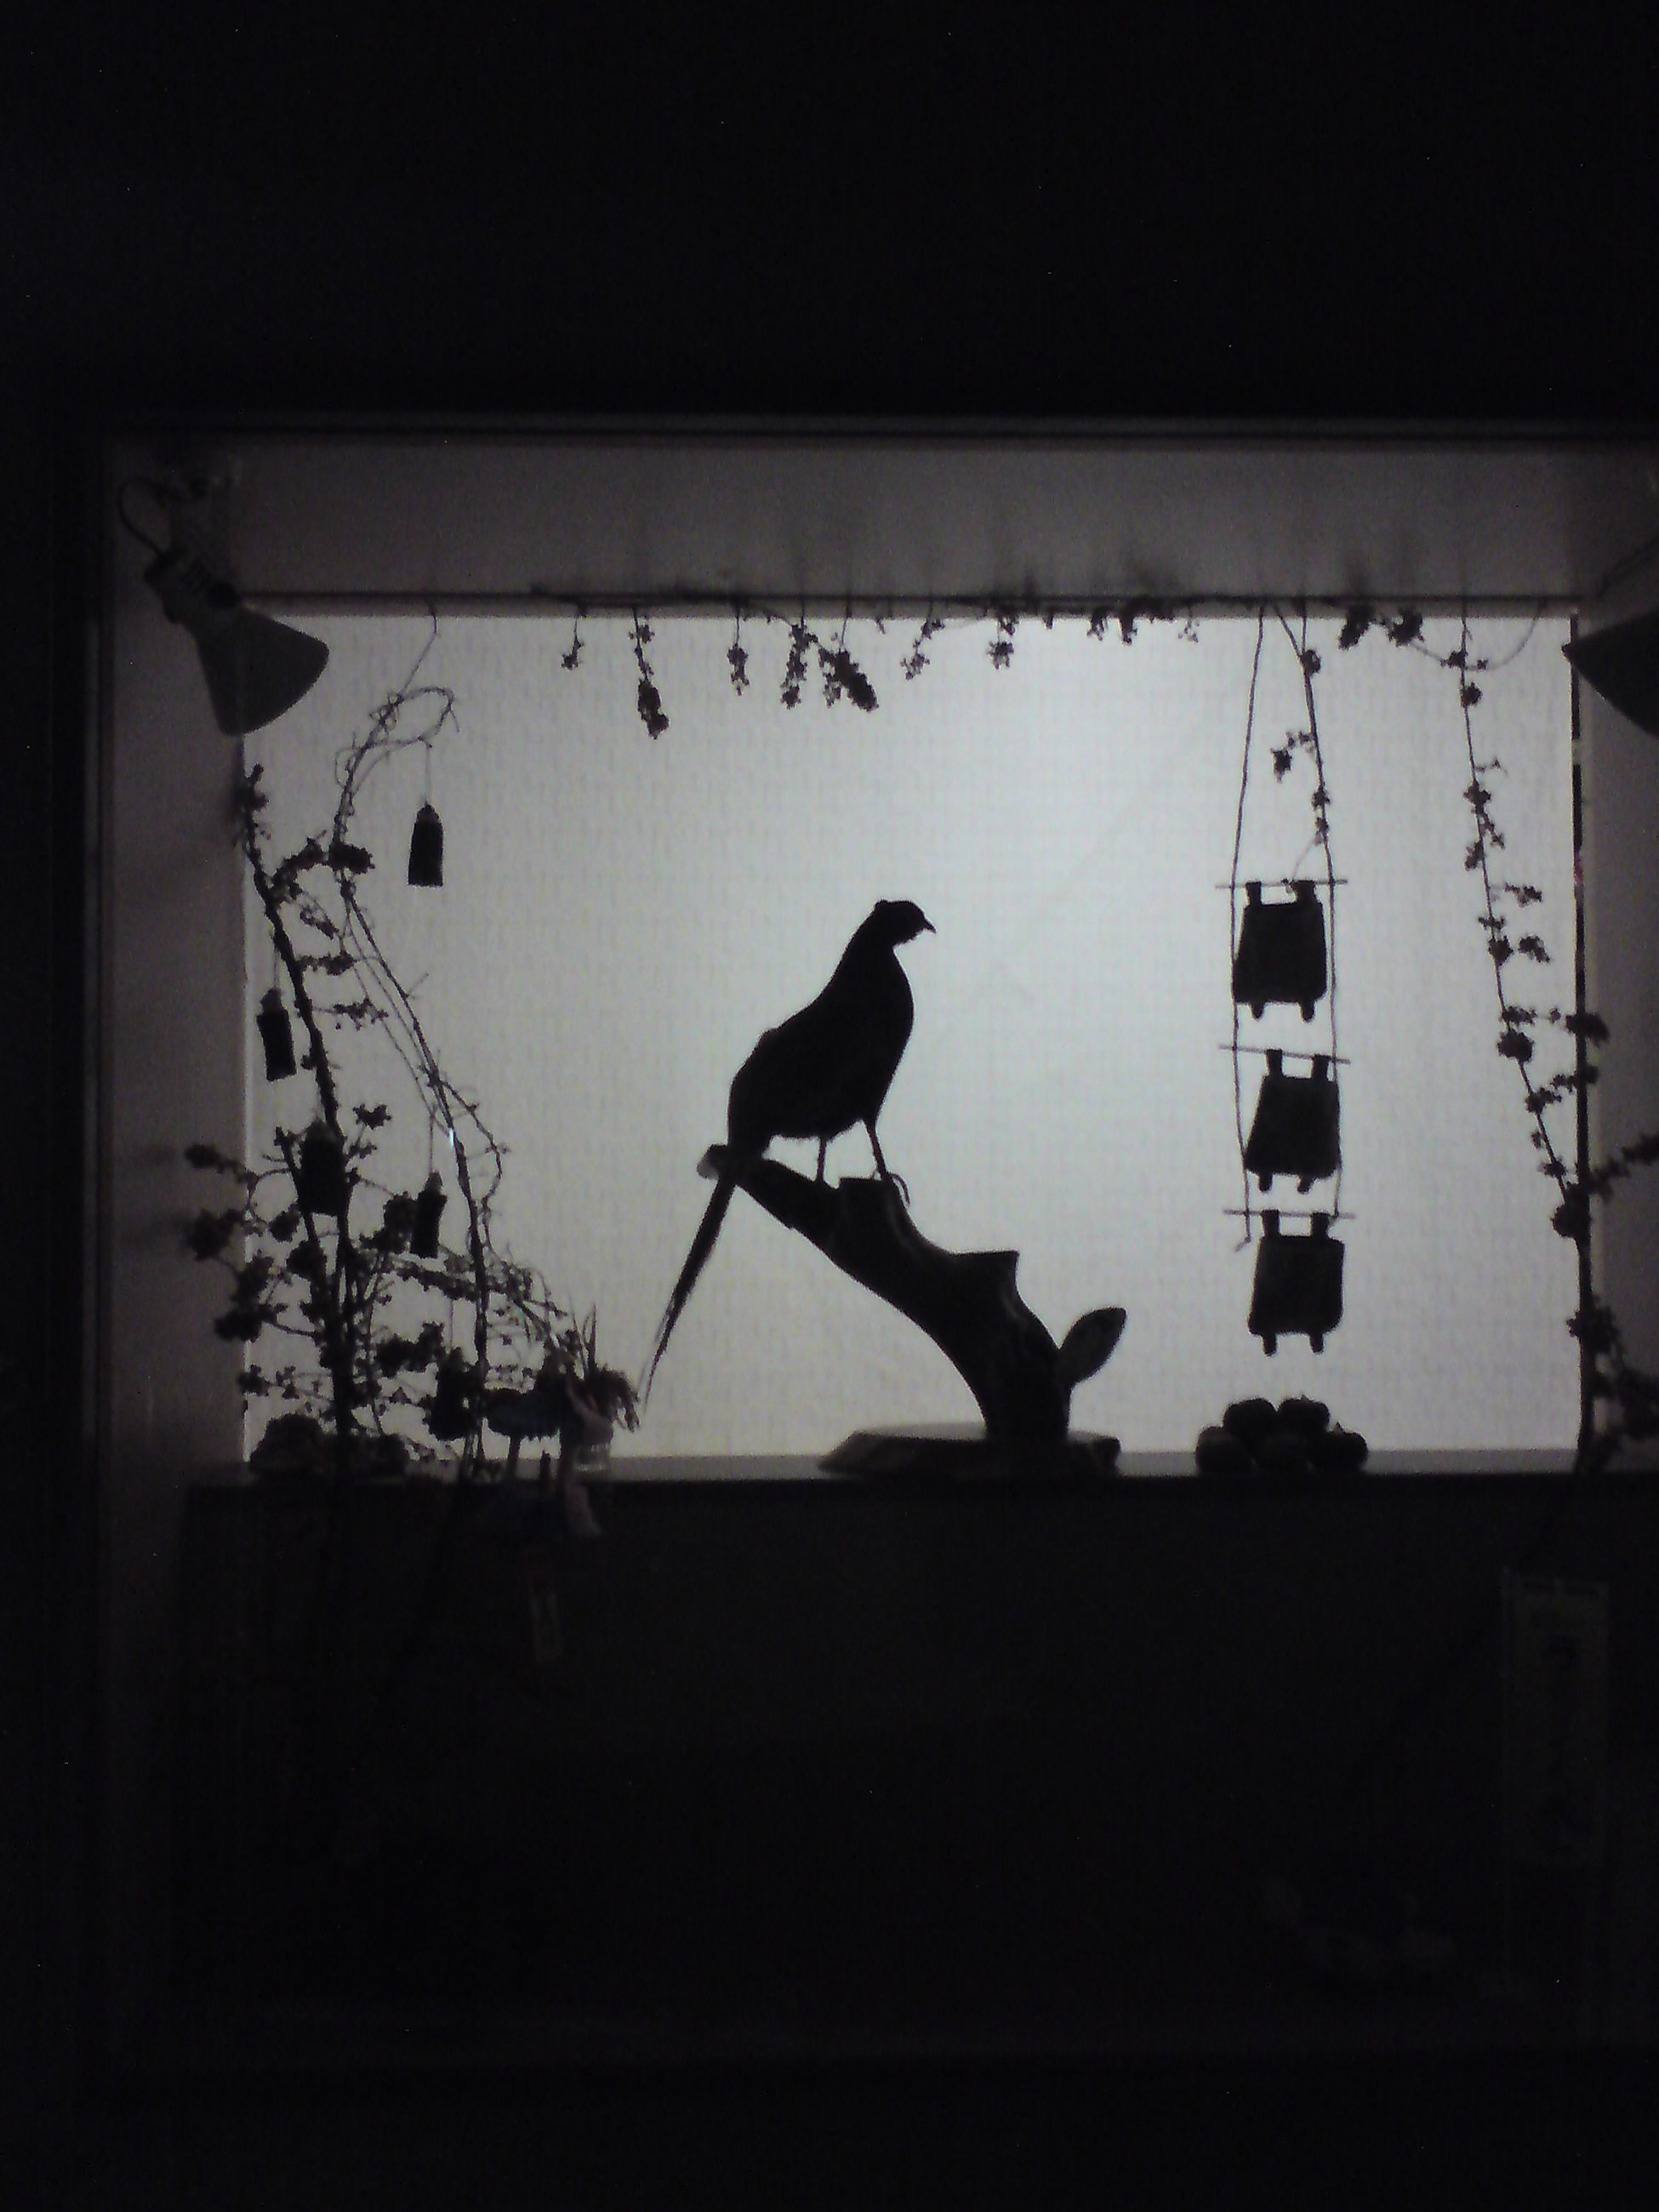 animal themes, low angle view, bird, animals in the wild, perching, wildlife, built structure, silhouette, architecture, indoors, hanging, cable, building exterior, one animal, no people, full length, window, day, power line